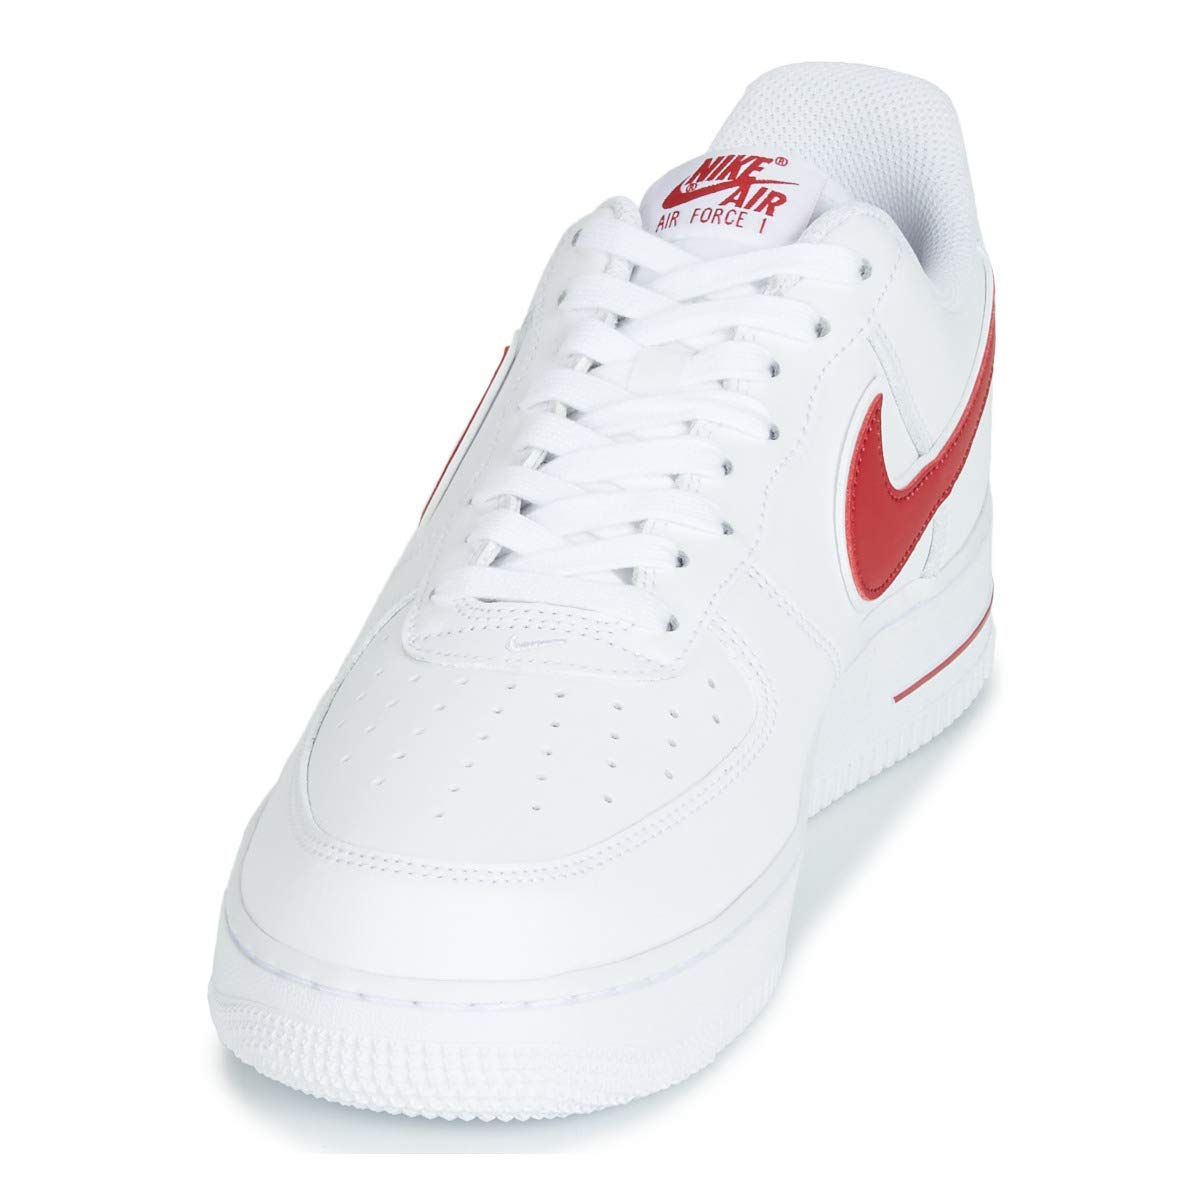 size 40 72771 24eaf Amazon.com   Nike Men s Air Force 1  07 3 Basketball Shoes White Gym Red,  Size 11   Basketball